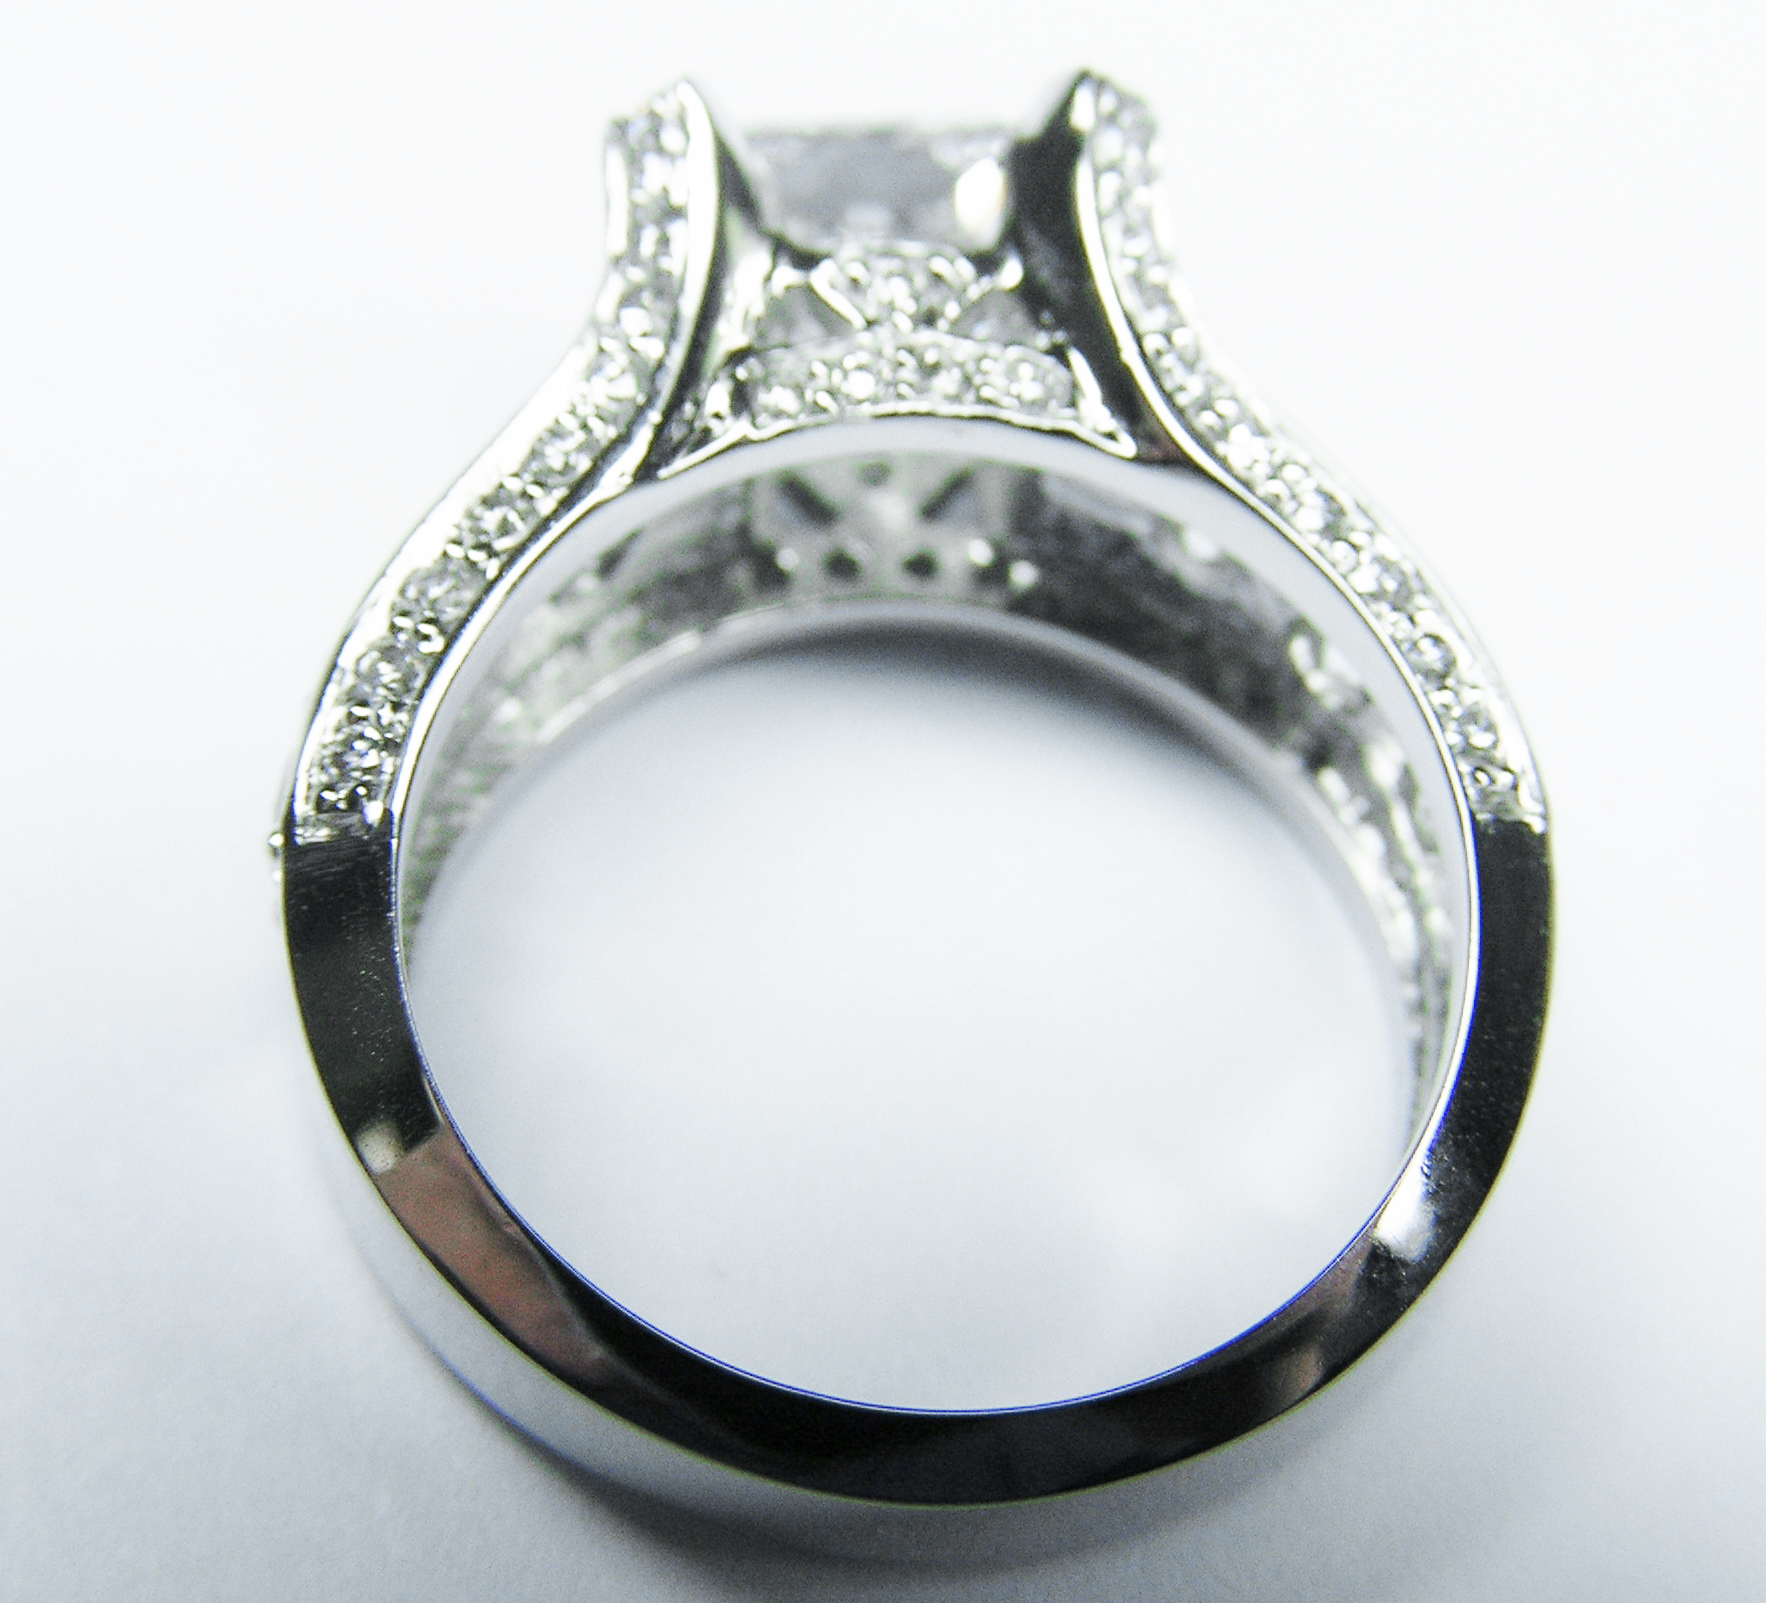 Radiant Diamond Engagement Ring Pave Diamond band & Prongs 1.1 TCW in Platinum